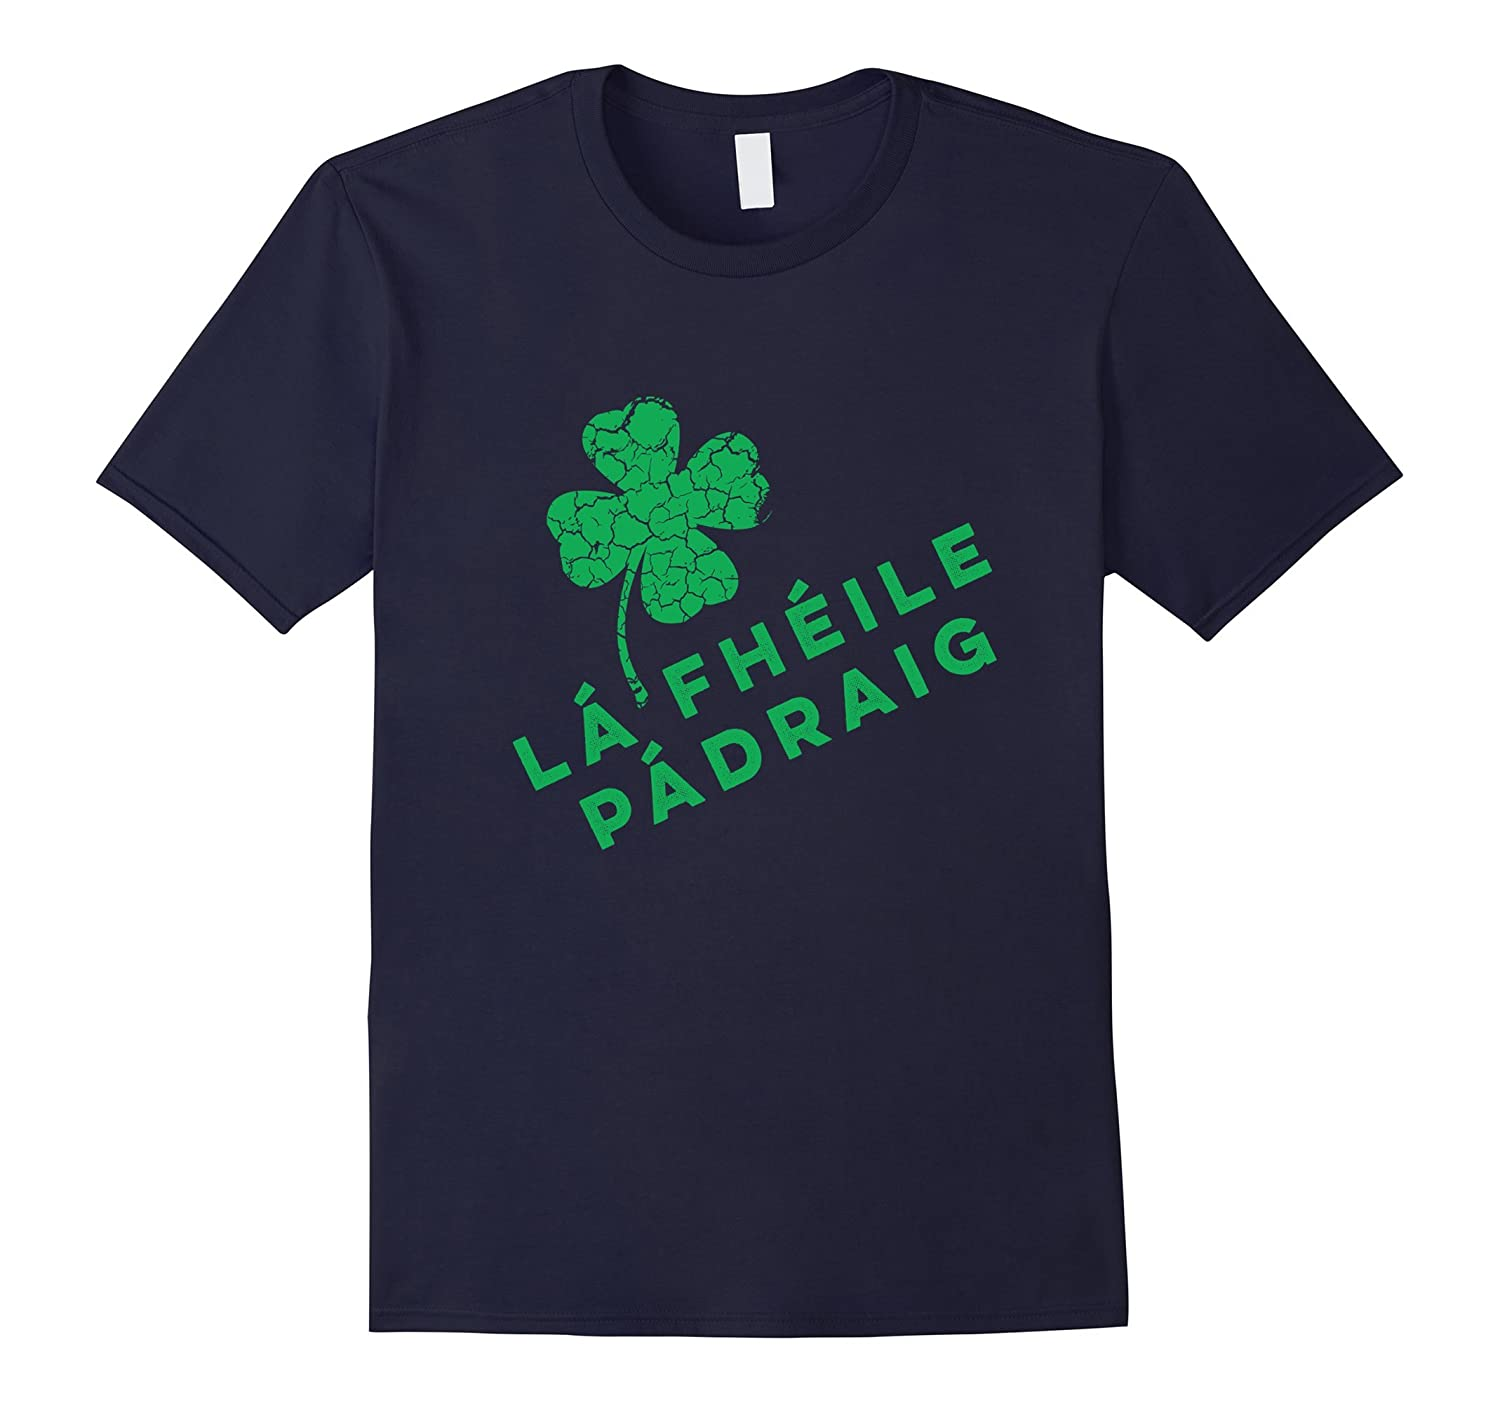 La Fheile Padraig - St. Patrick's day T-Shirt - march 17th-Art